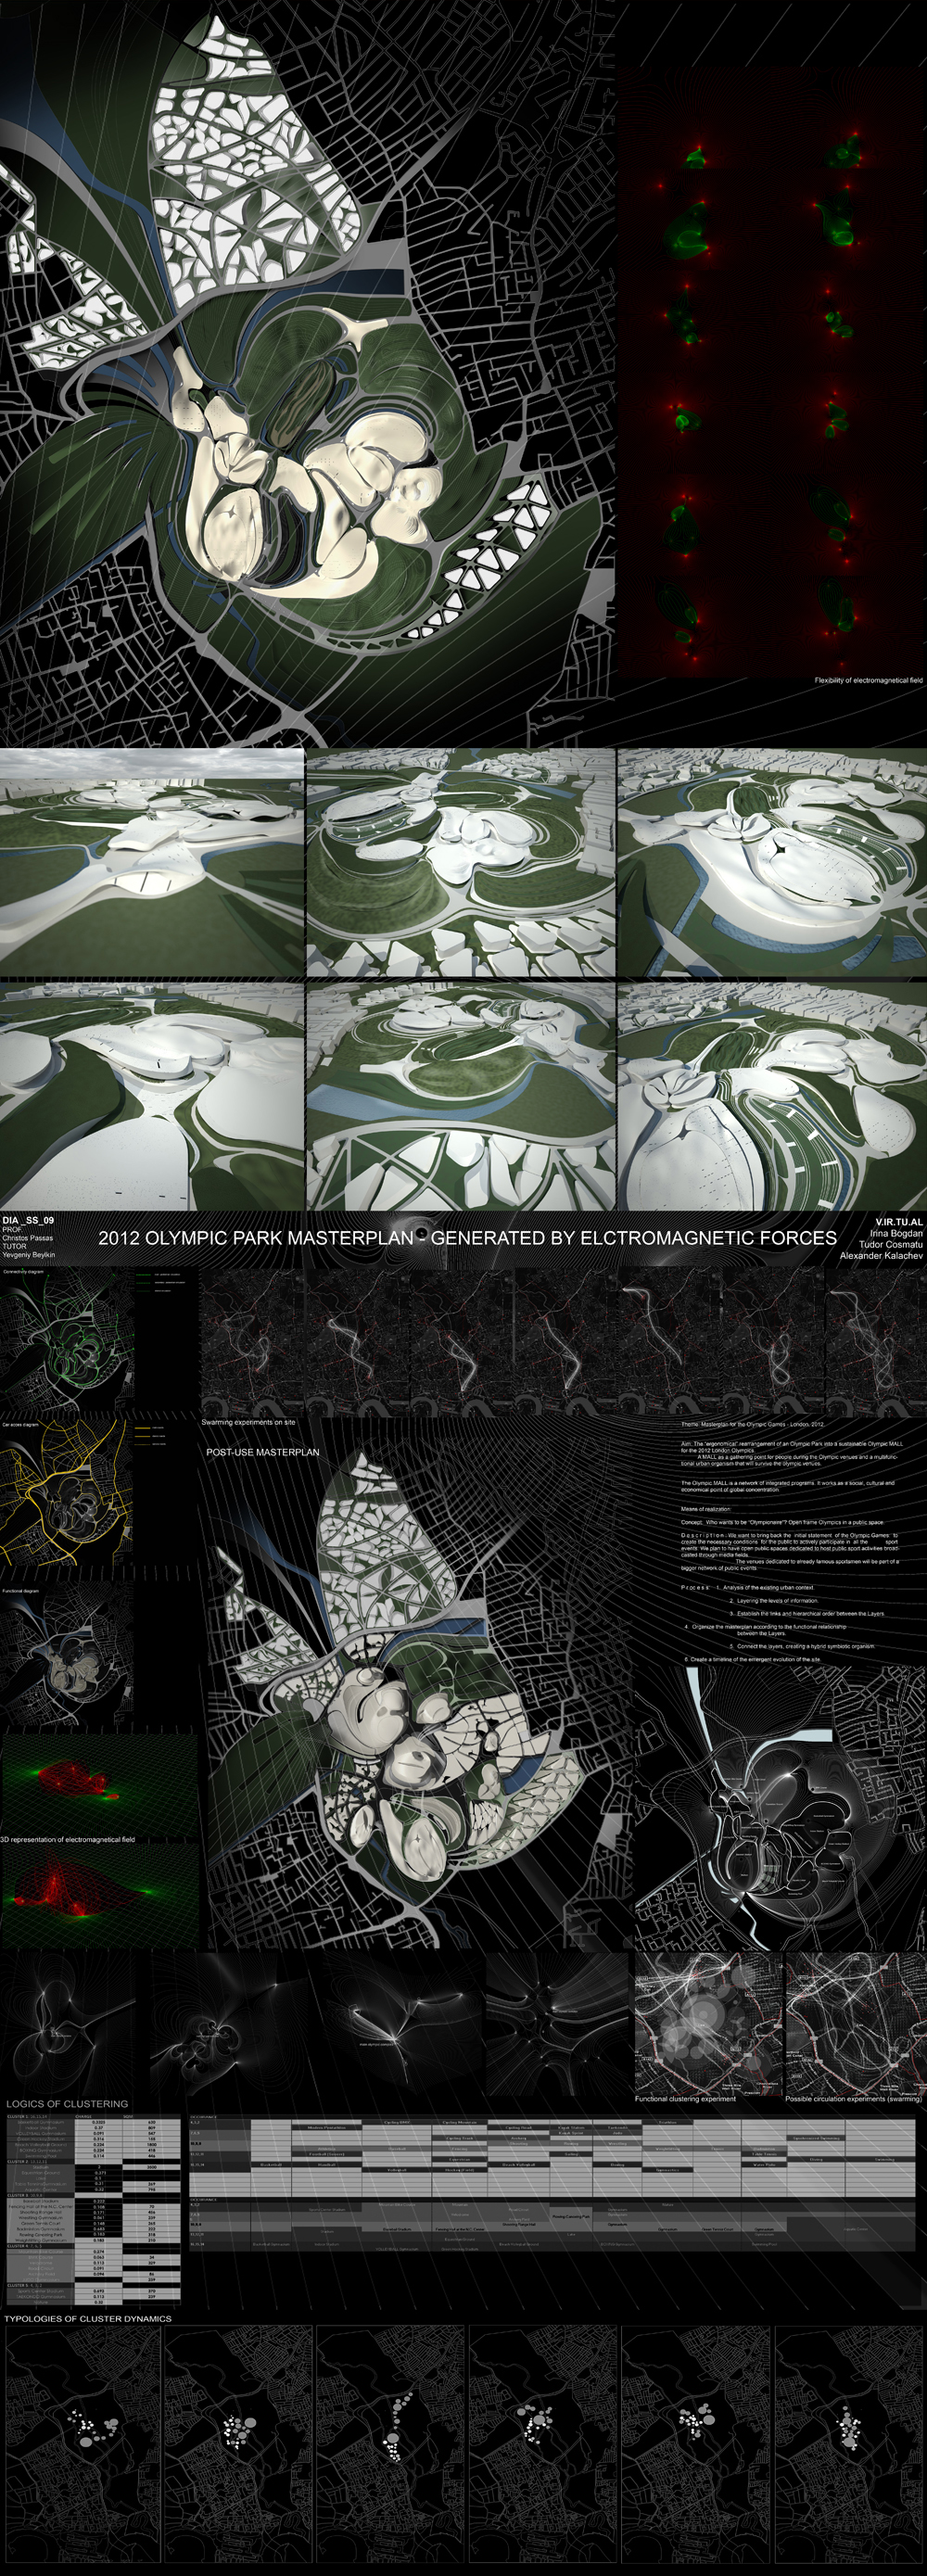 masterplan parametric planning,urbanism,architecture,design